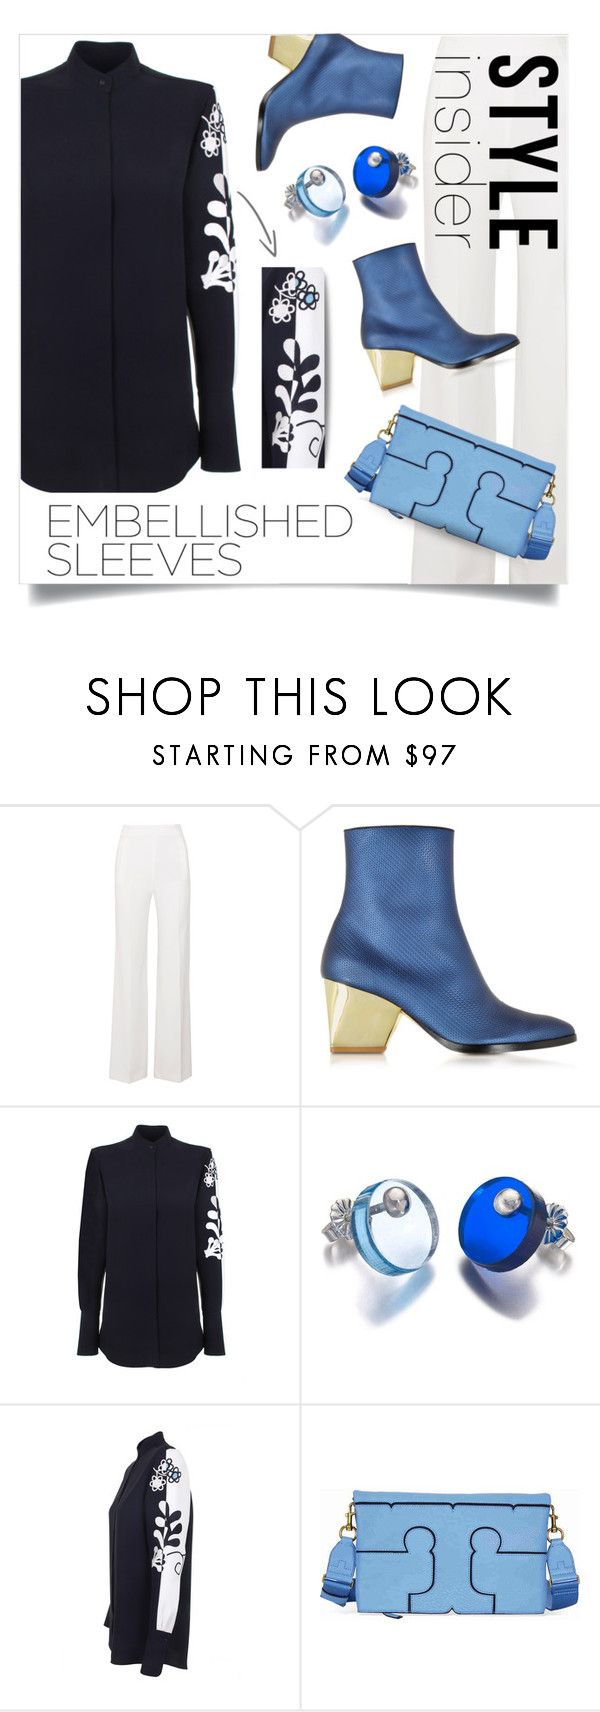 """""""embellished"""" by collagette ❤ liked on Polyvore featuring Roland Mouret, Zoe Lee, Victoria, Victoria Beckham, FrillyByLily, Tory Burch, ToryBurch, victoriabeckham and embellishedsleeves"""